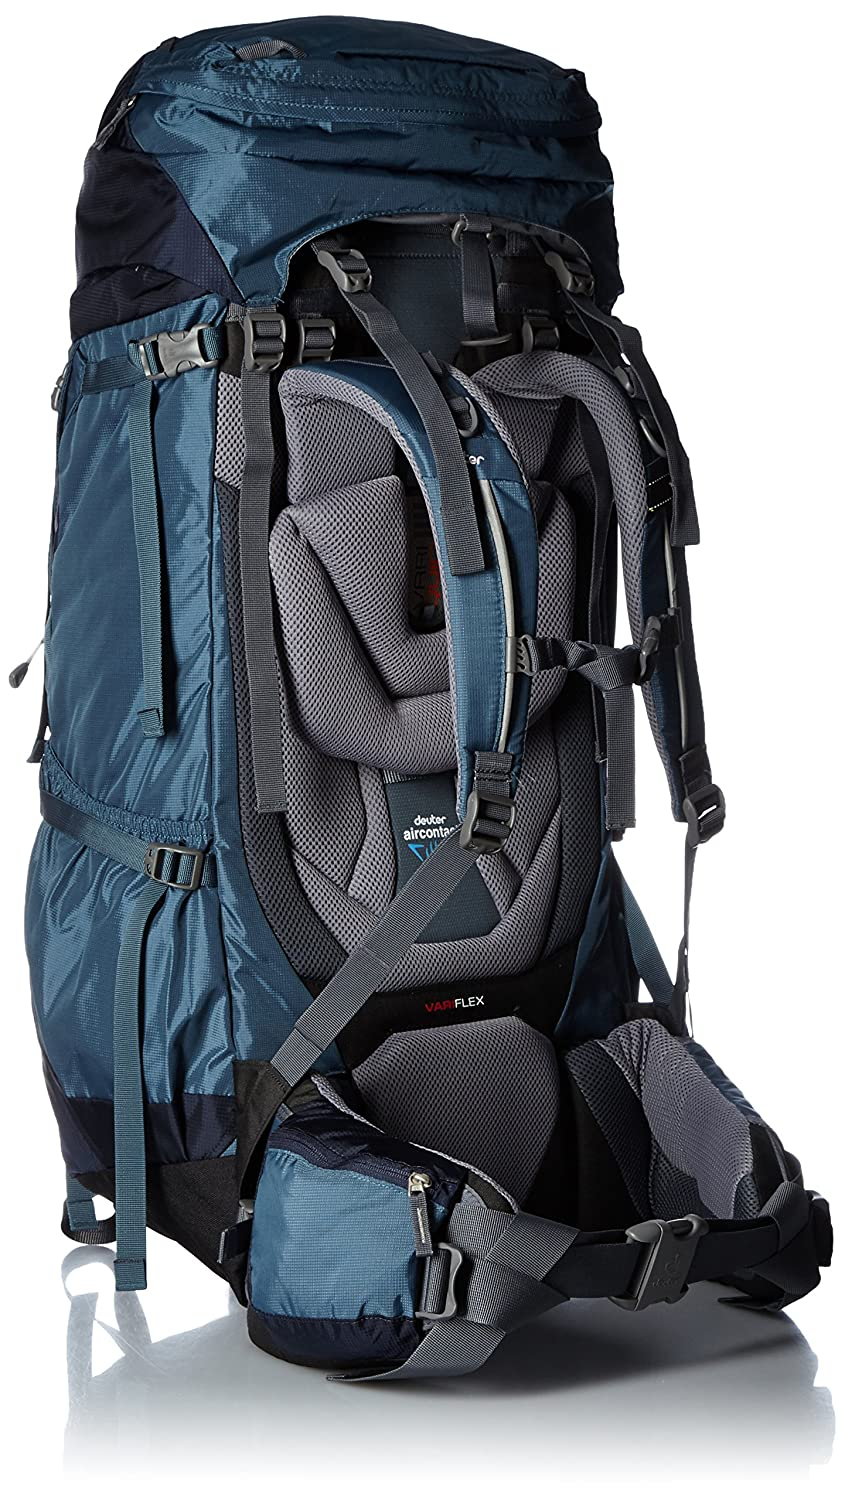 3912884837b Deuter 85 Ltrs Arctic-Navy Hiking Backpack (4046051069494): Amazon.in:  Bags, Wallets & Luggage